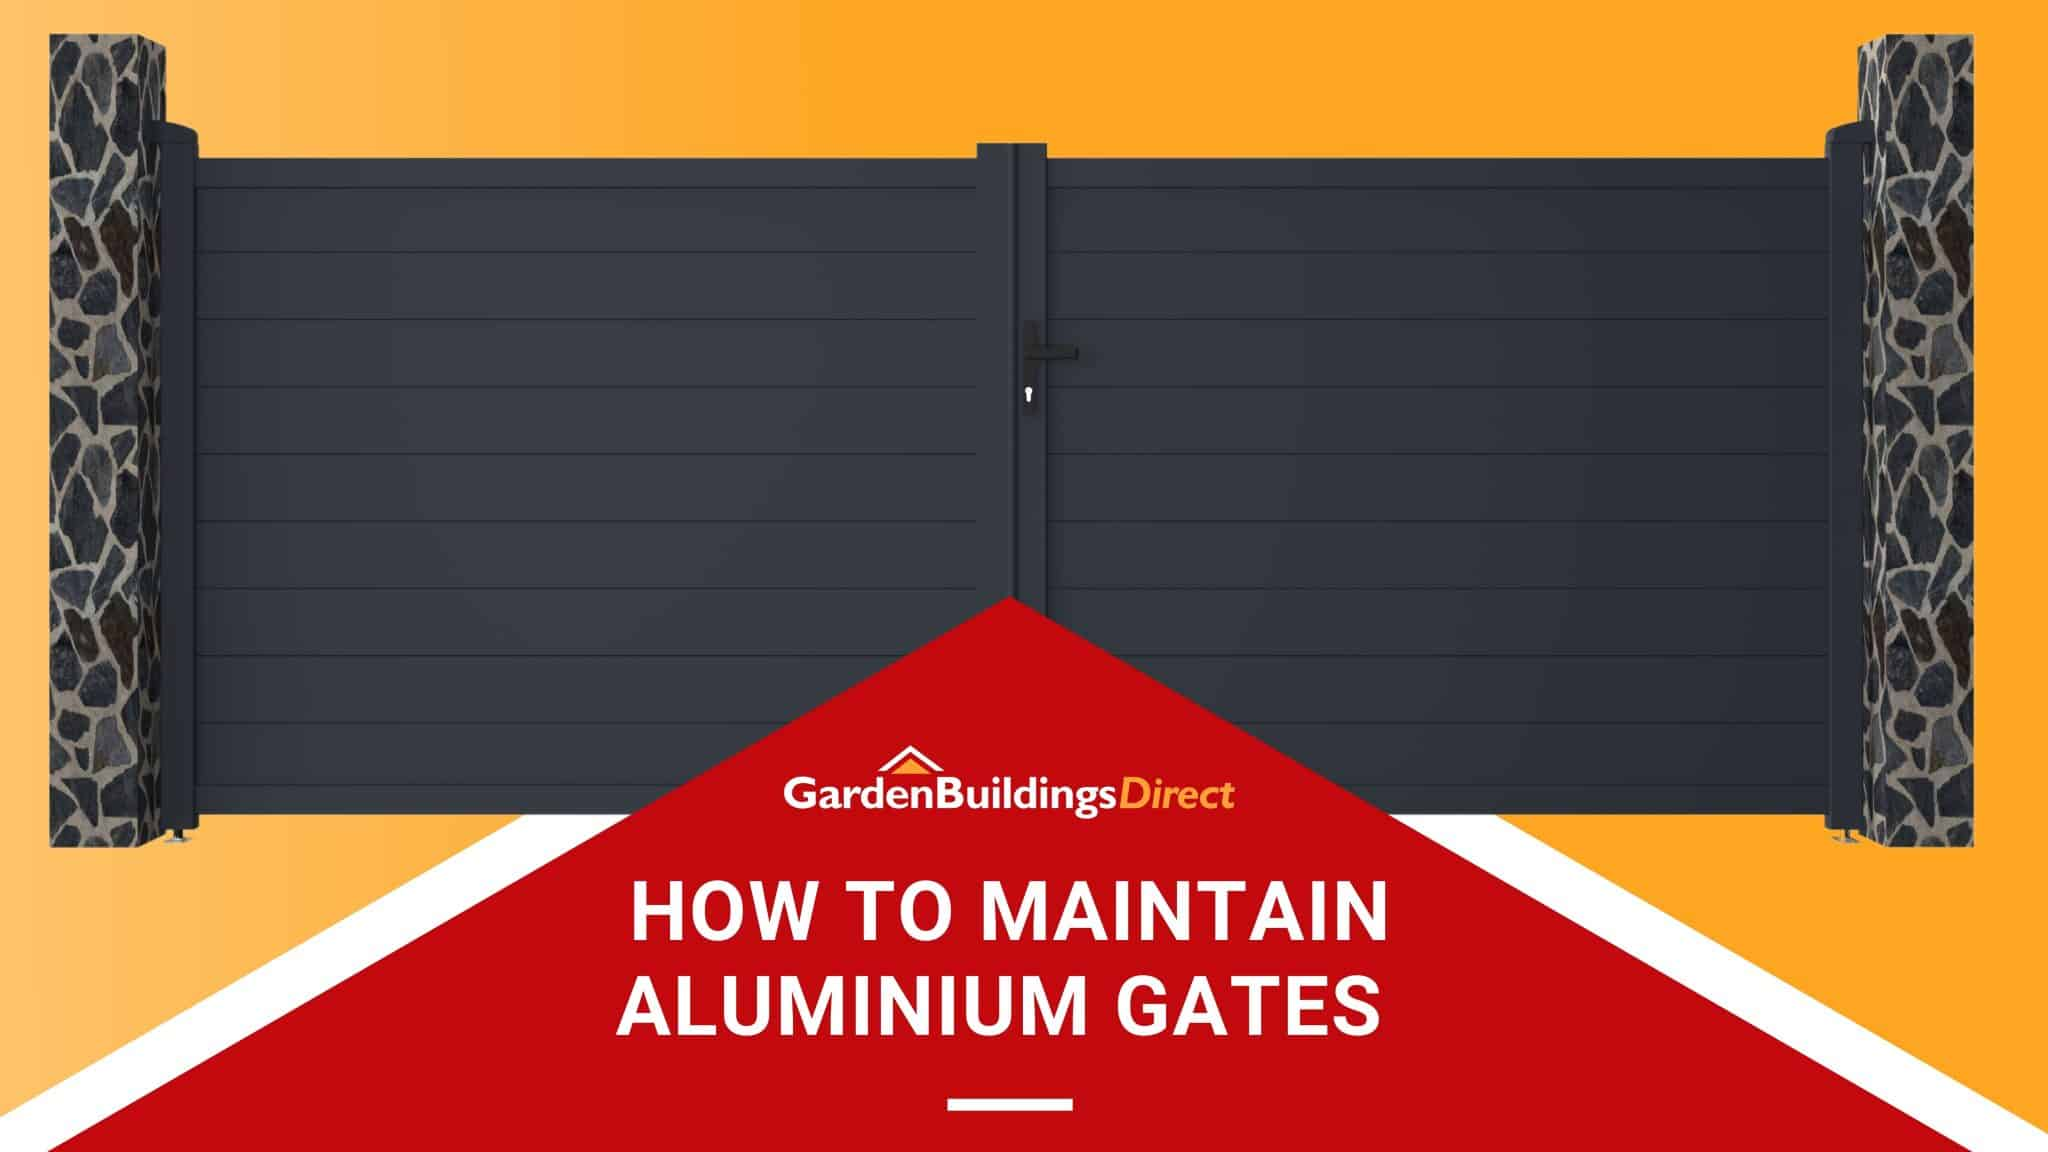 How to Maintain Aluminium Gates Garden Buildings Direct Featured Image with double-swing black powder-coated aluminium driveway gate on yellow background with red arrow at the bottom with title and GBD logo